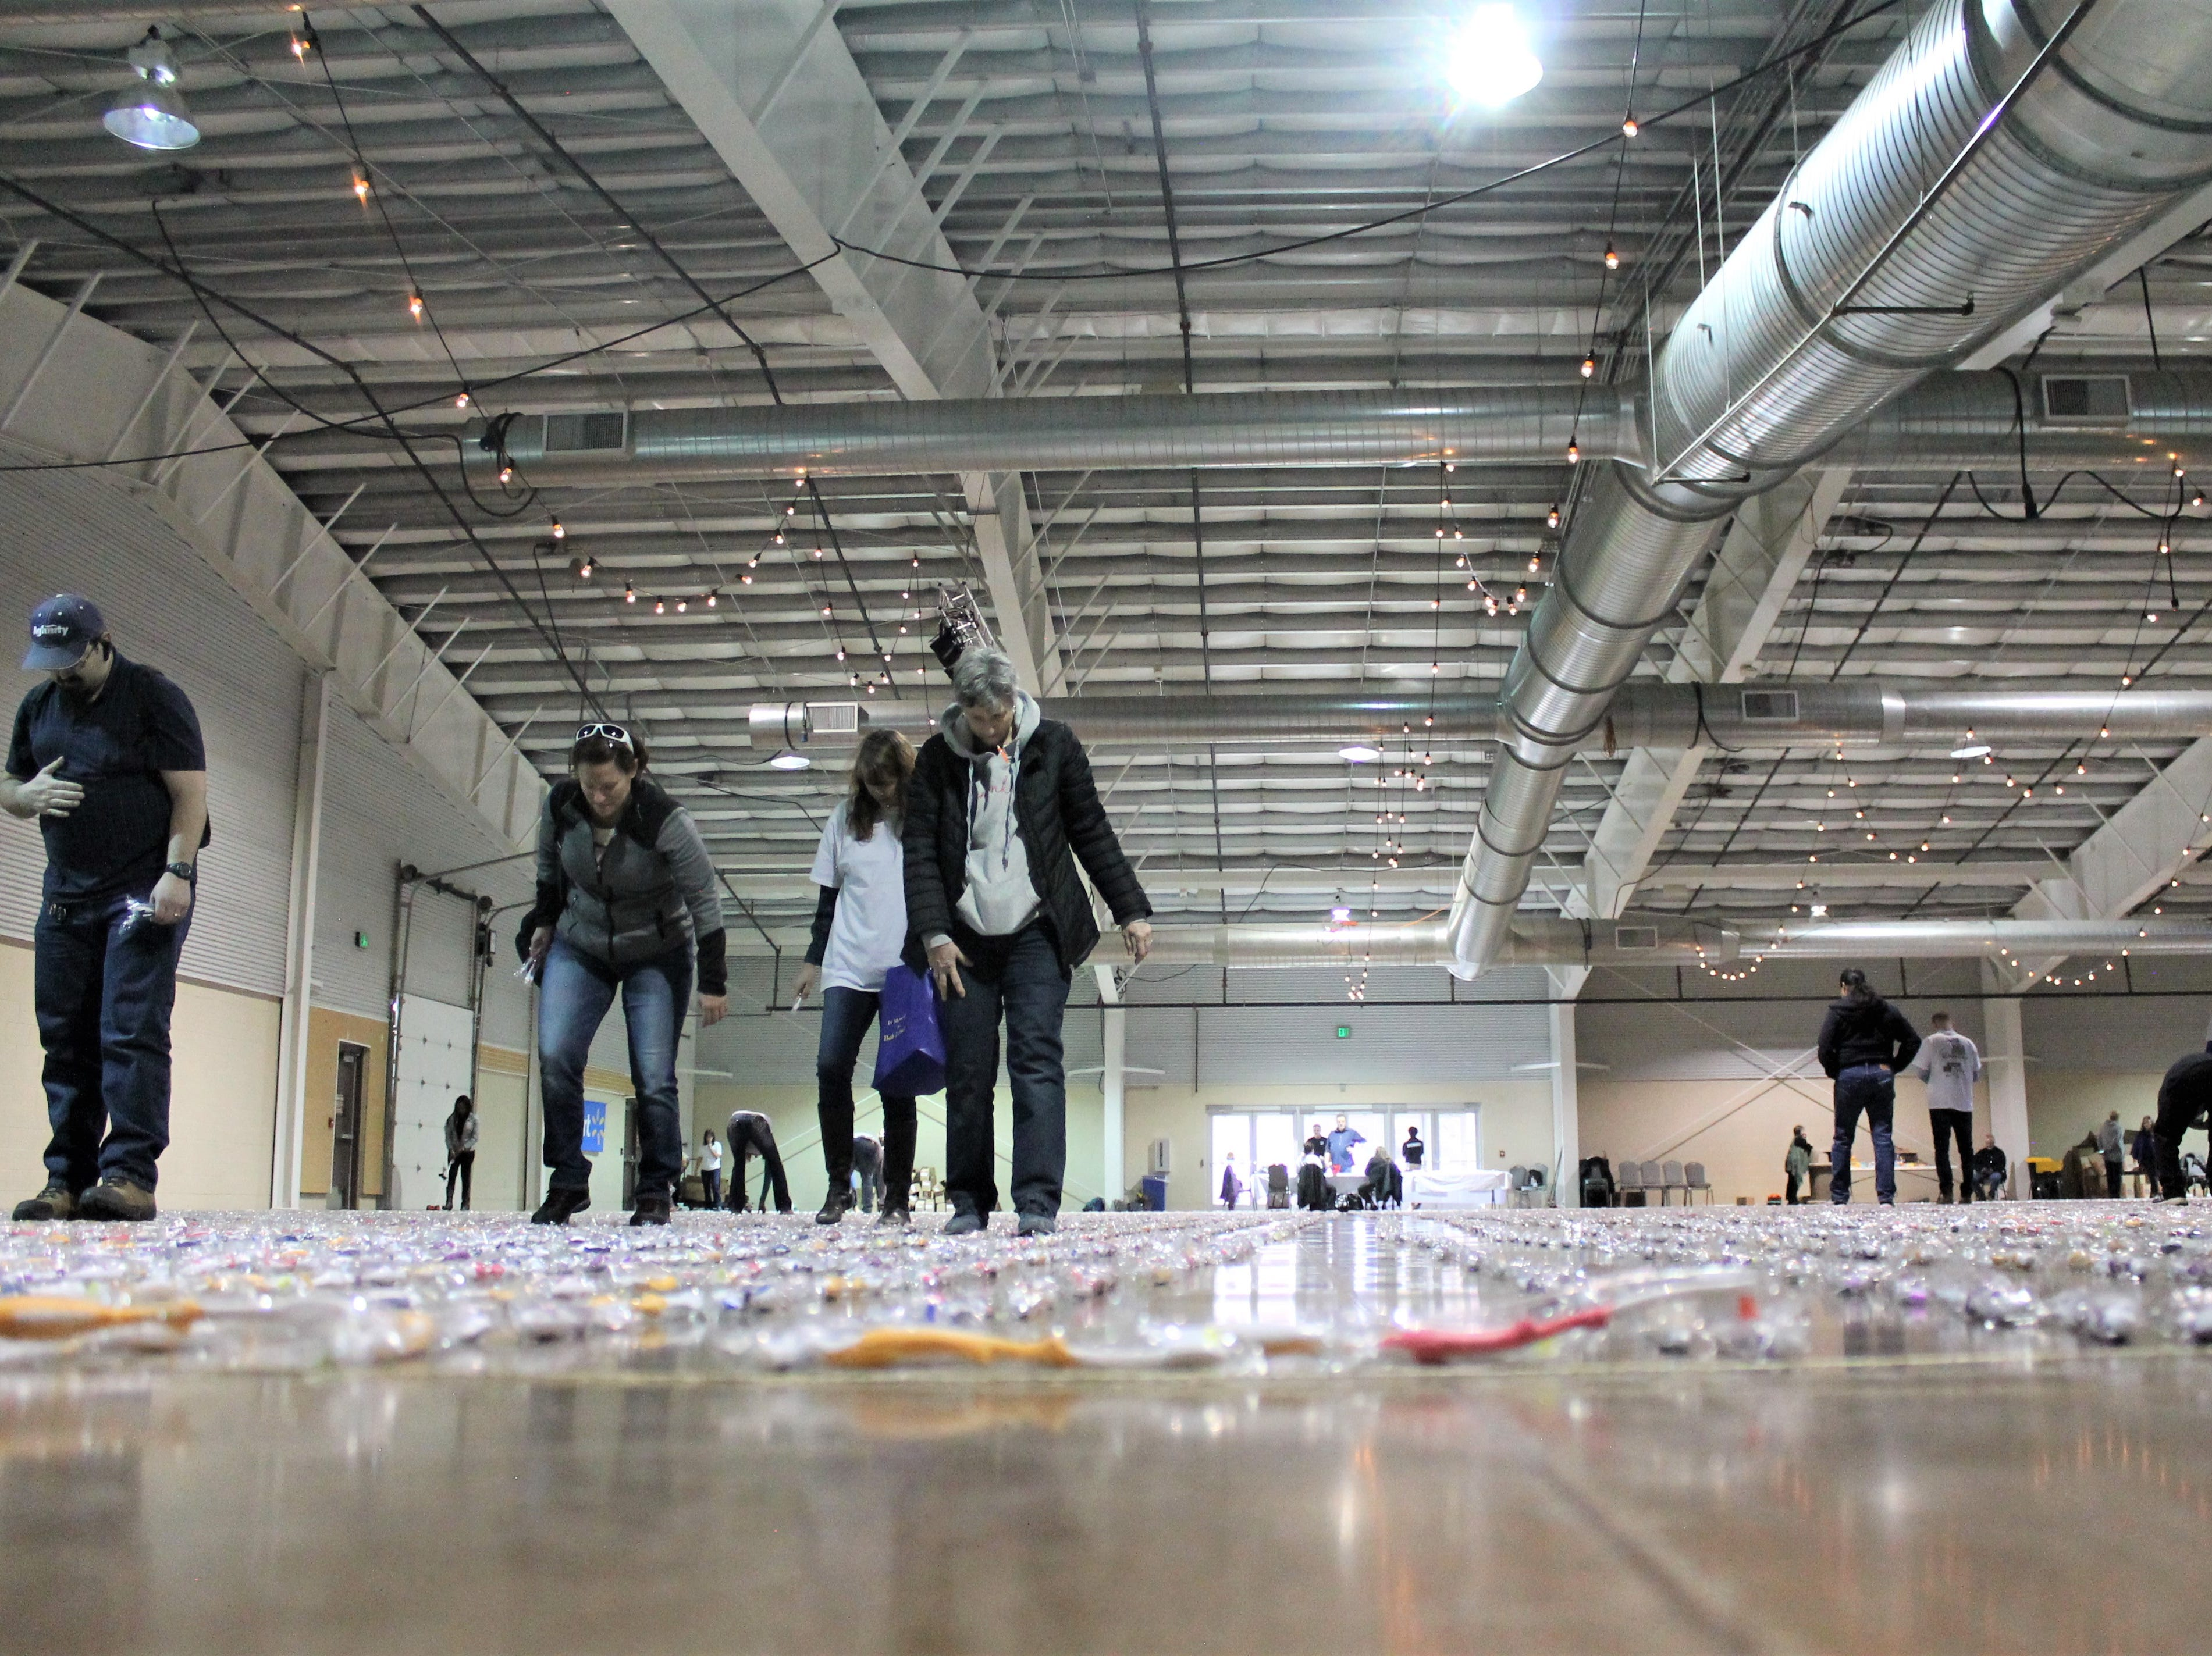 More than 60 volunteers came together Feb. 26, 2019 to line up 41,769 toothbrushes. They succeeded in breaking the Guinness World Record for the most toothbrushes in a continuous line. The toothbrushes will be donated to organizations across Colorado.